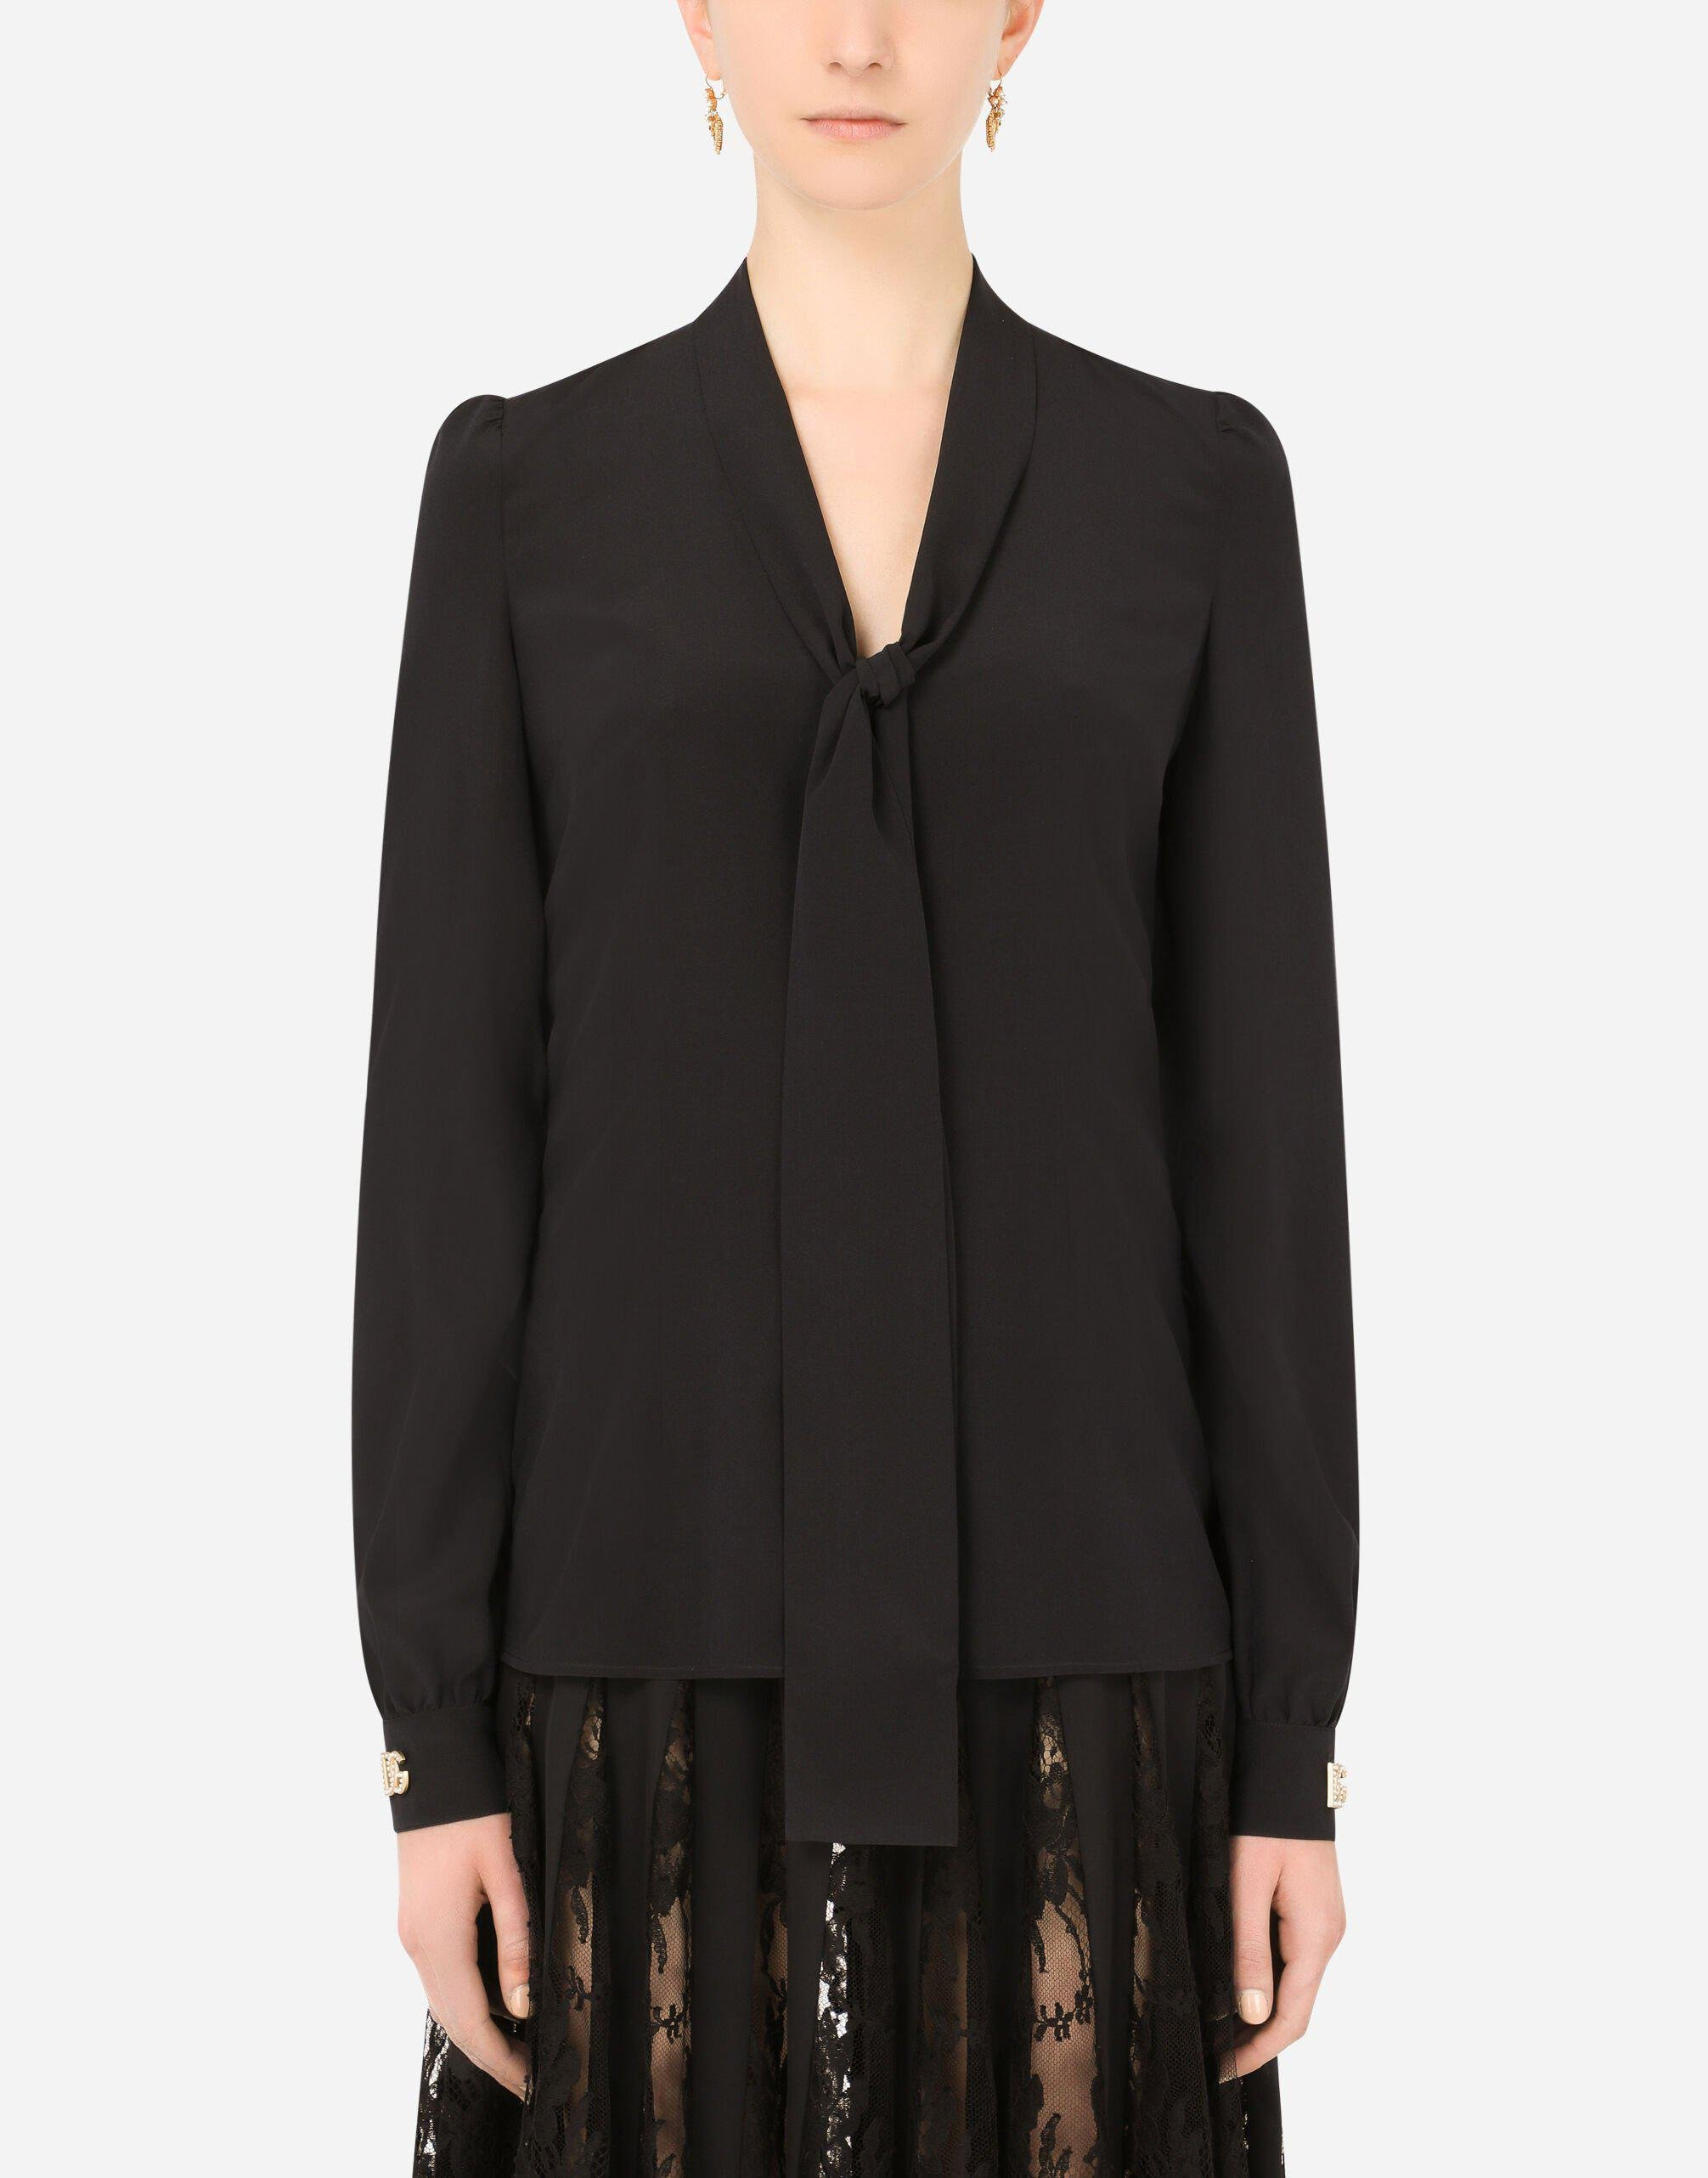 Crepe de chine pussy-bow shirt with crystal DG embellishment